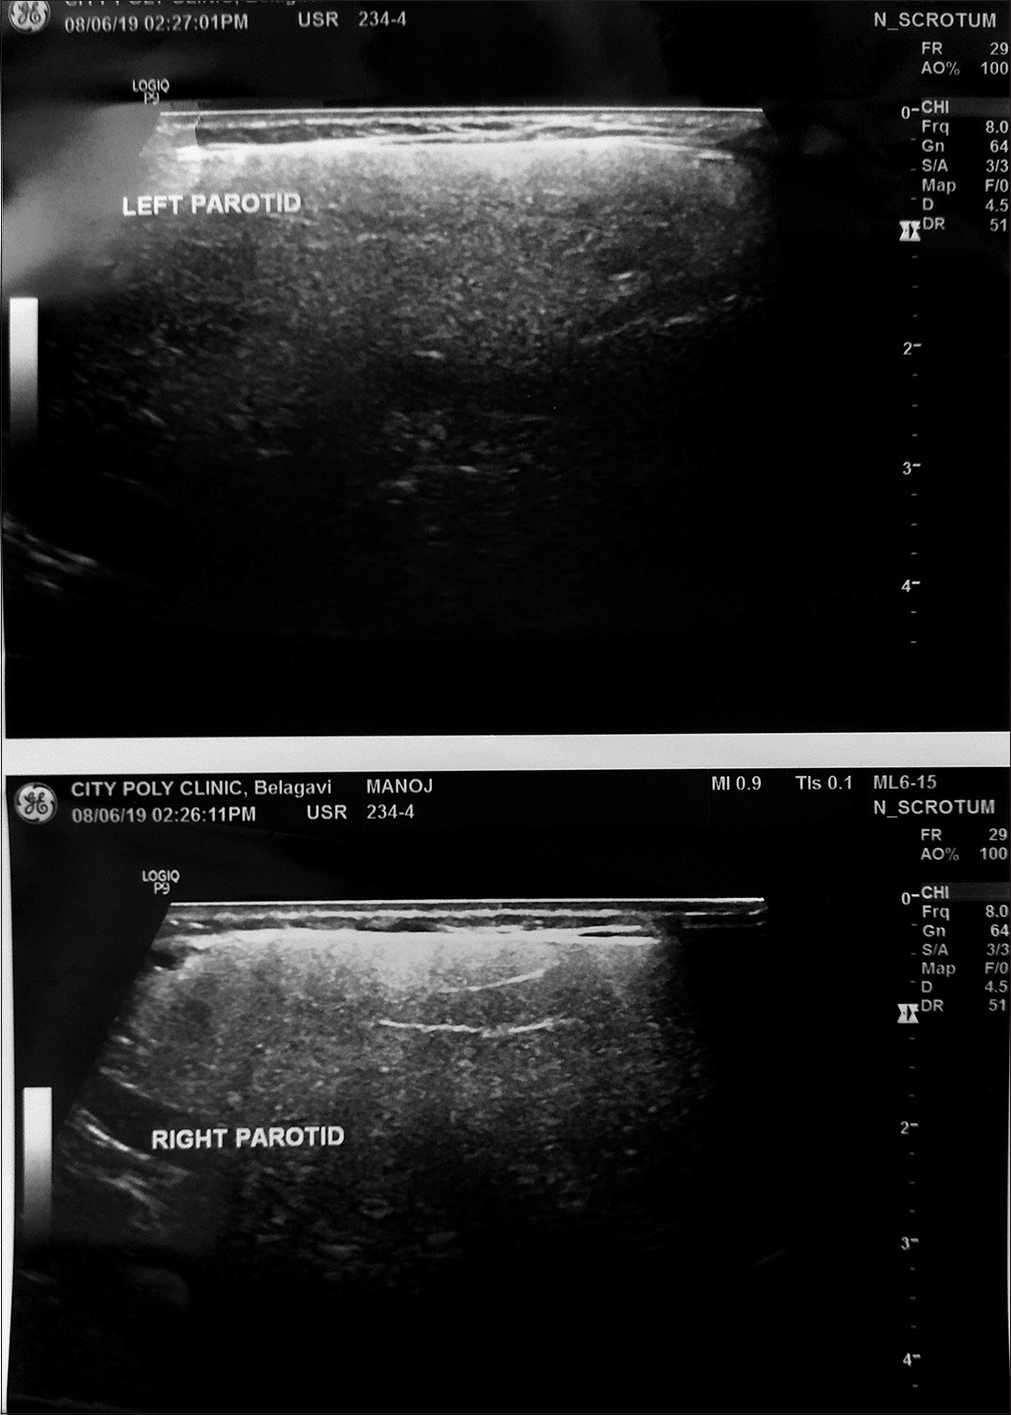 Figure 1: Photograph showing ultrasonography image with no abnormality detected except for a slight swelling in the parotid gland